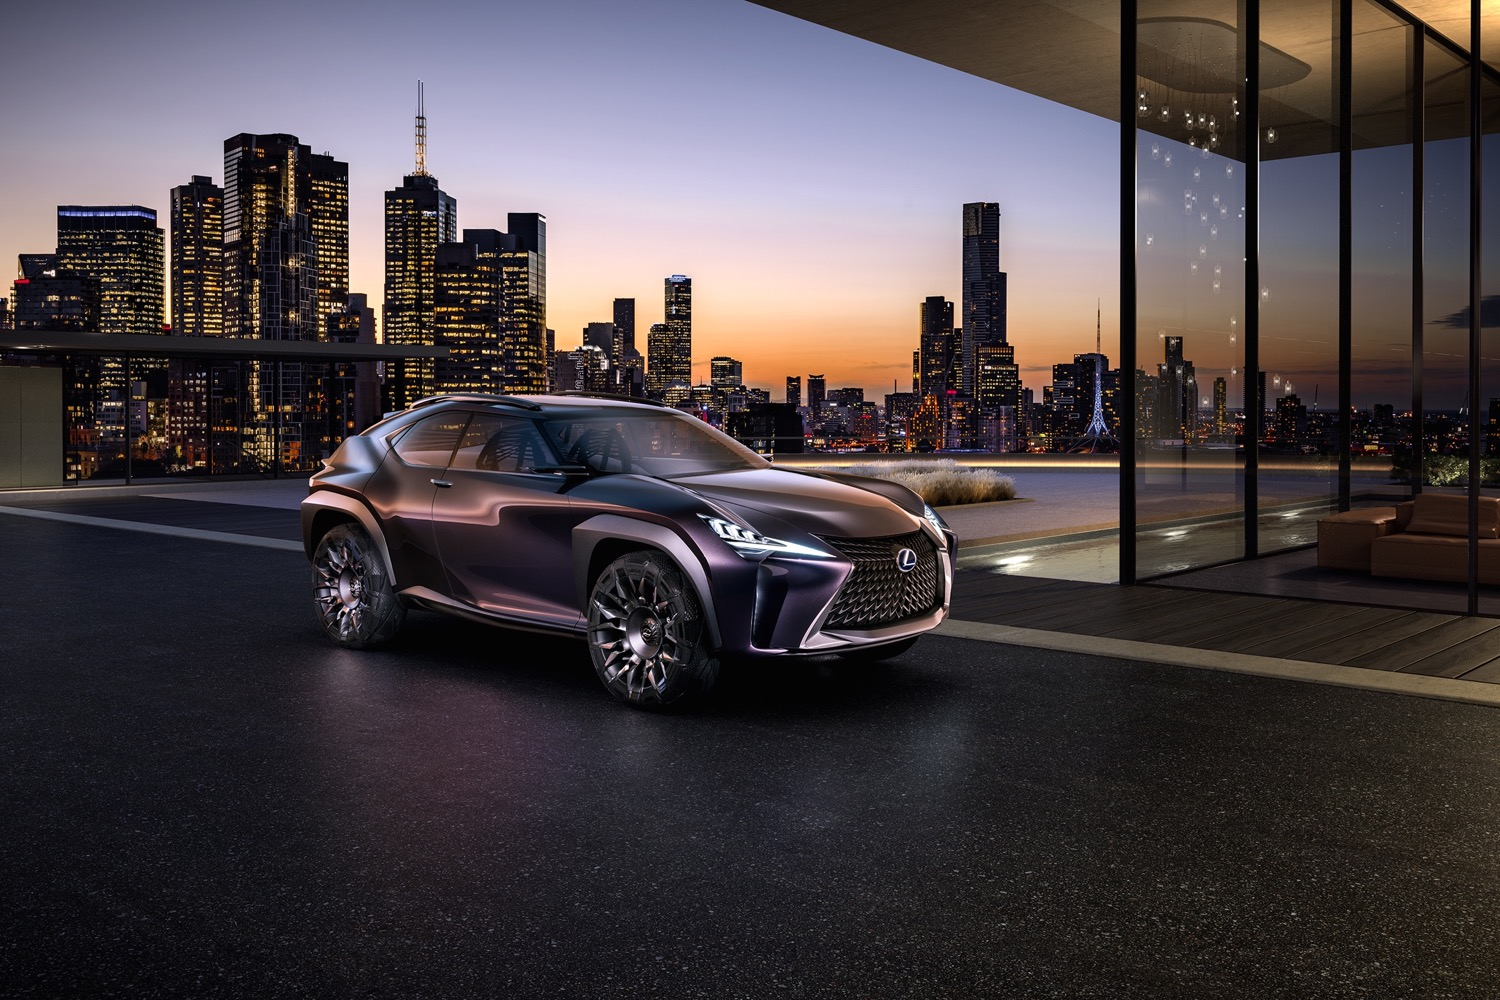 lexus ux small crossover utility still being studied for u.s. (update)